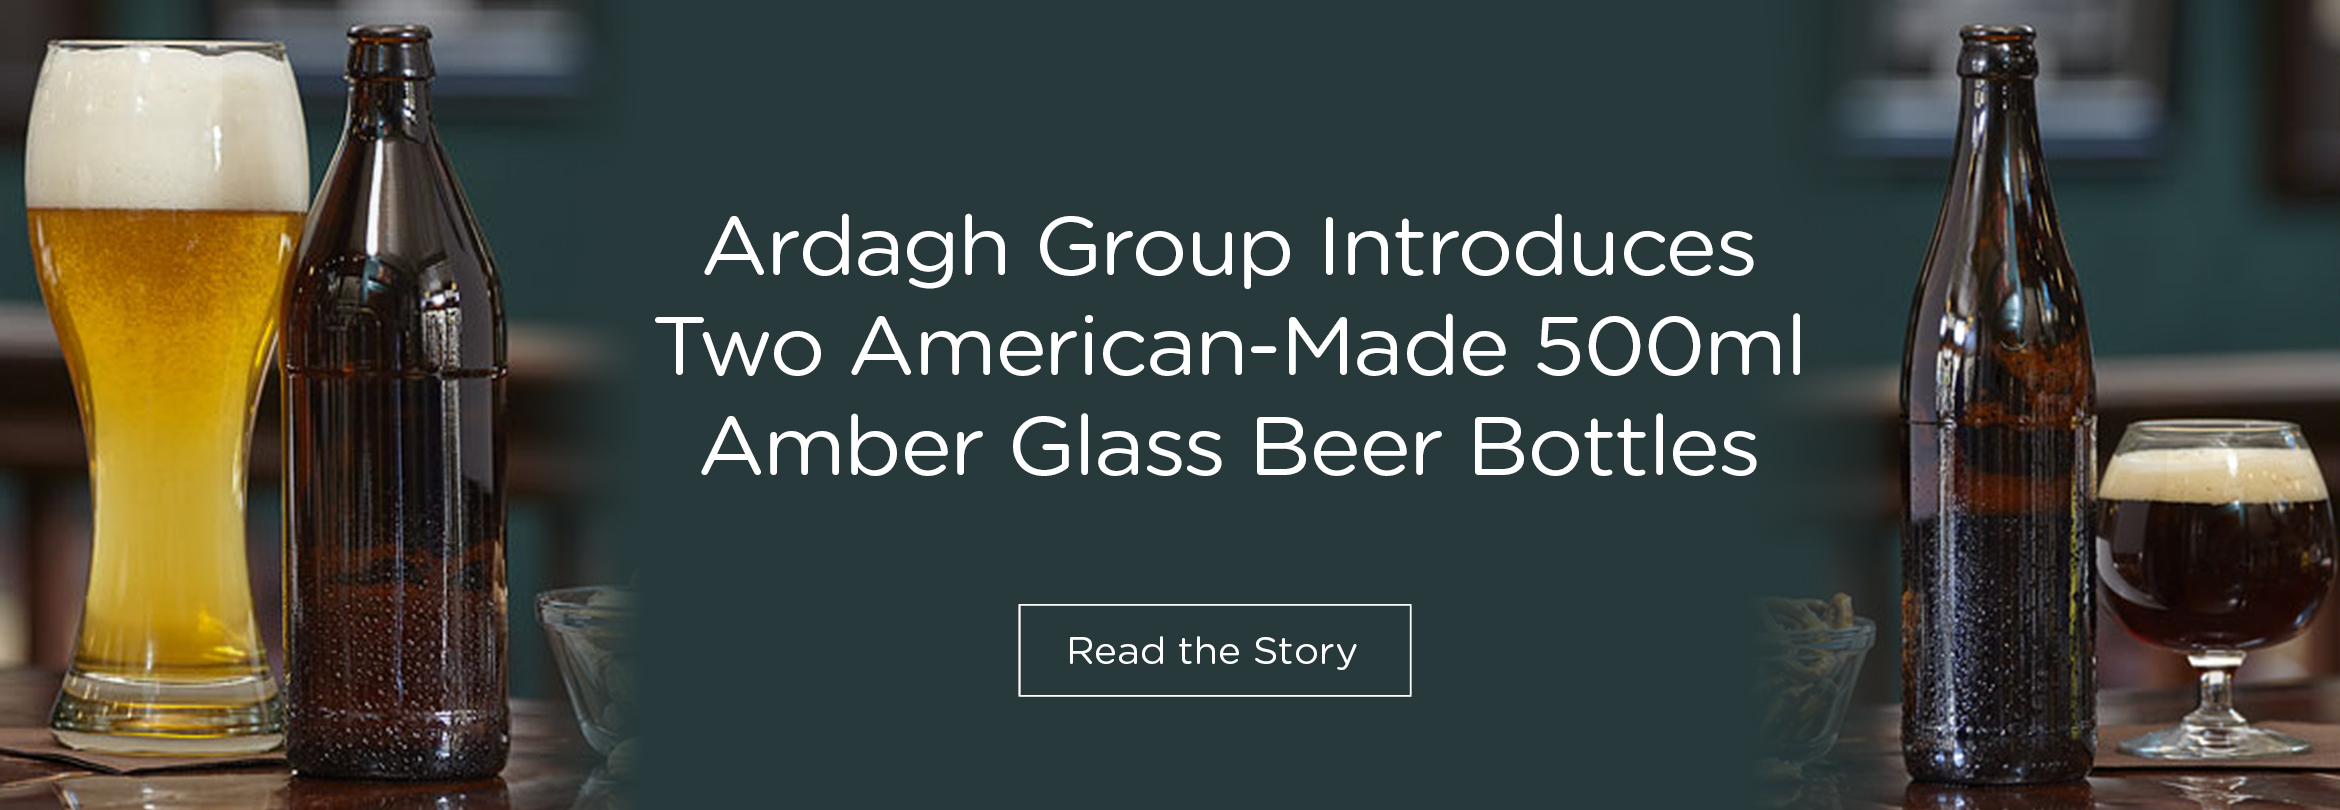 Ardagh Introduces US Made 500ml Beer Bottles